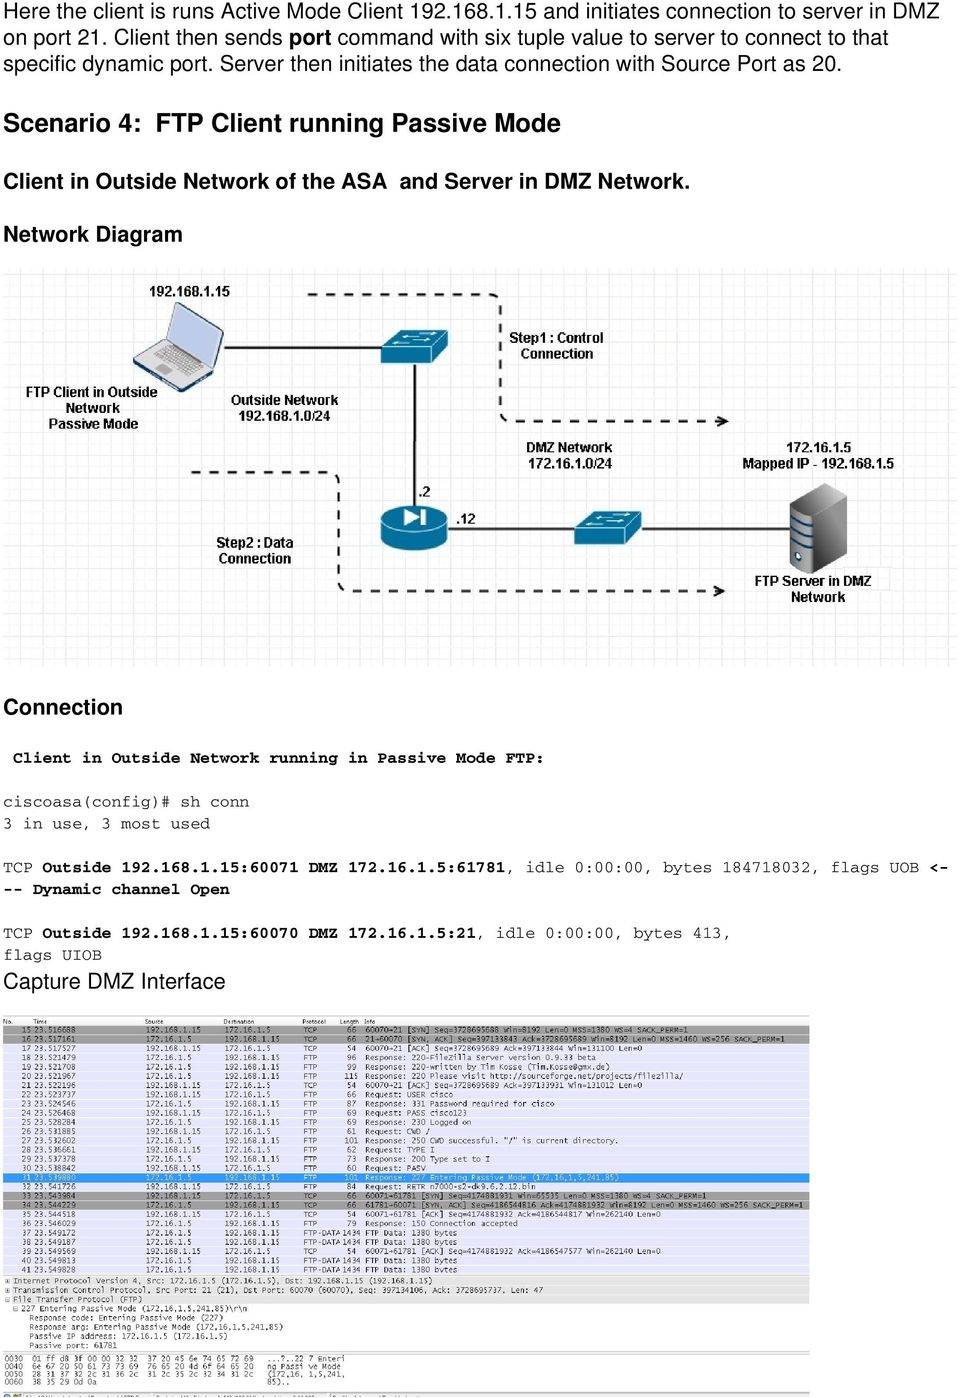 Scenario 4: FTP Client running Passive Mode Client in Outside Network of the ASA and Server in DMZ Network.